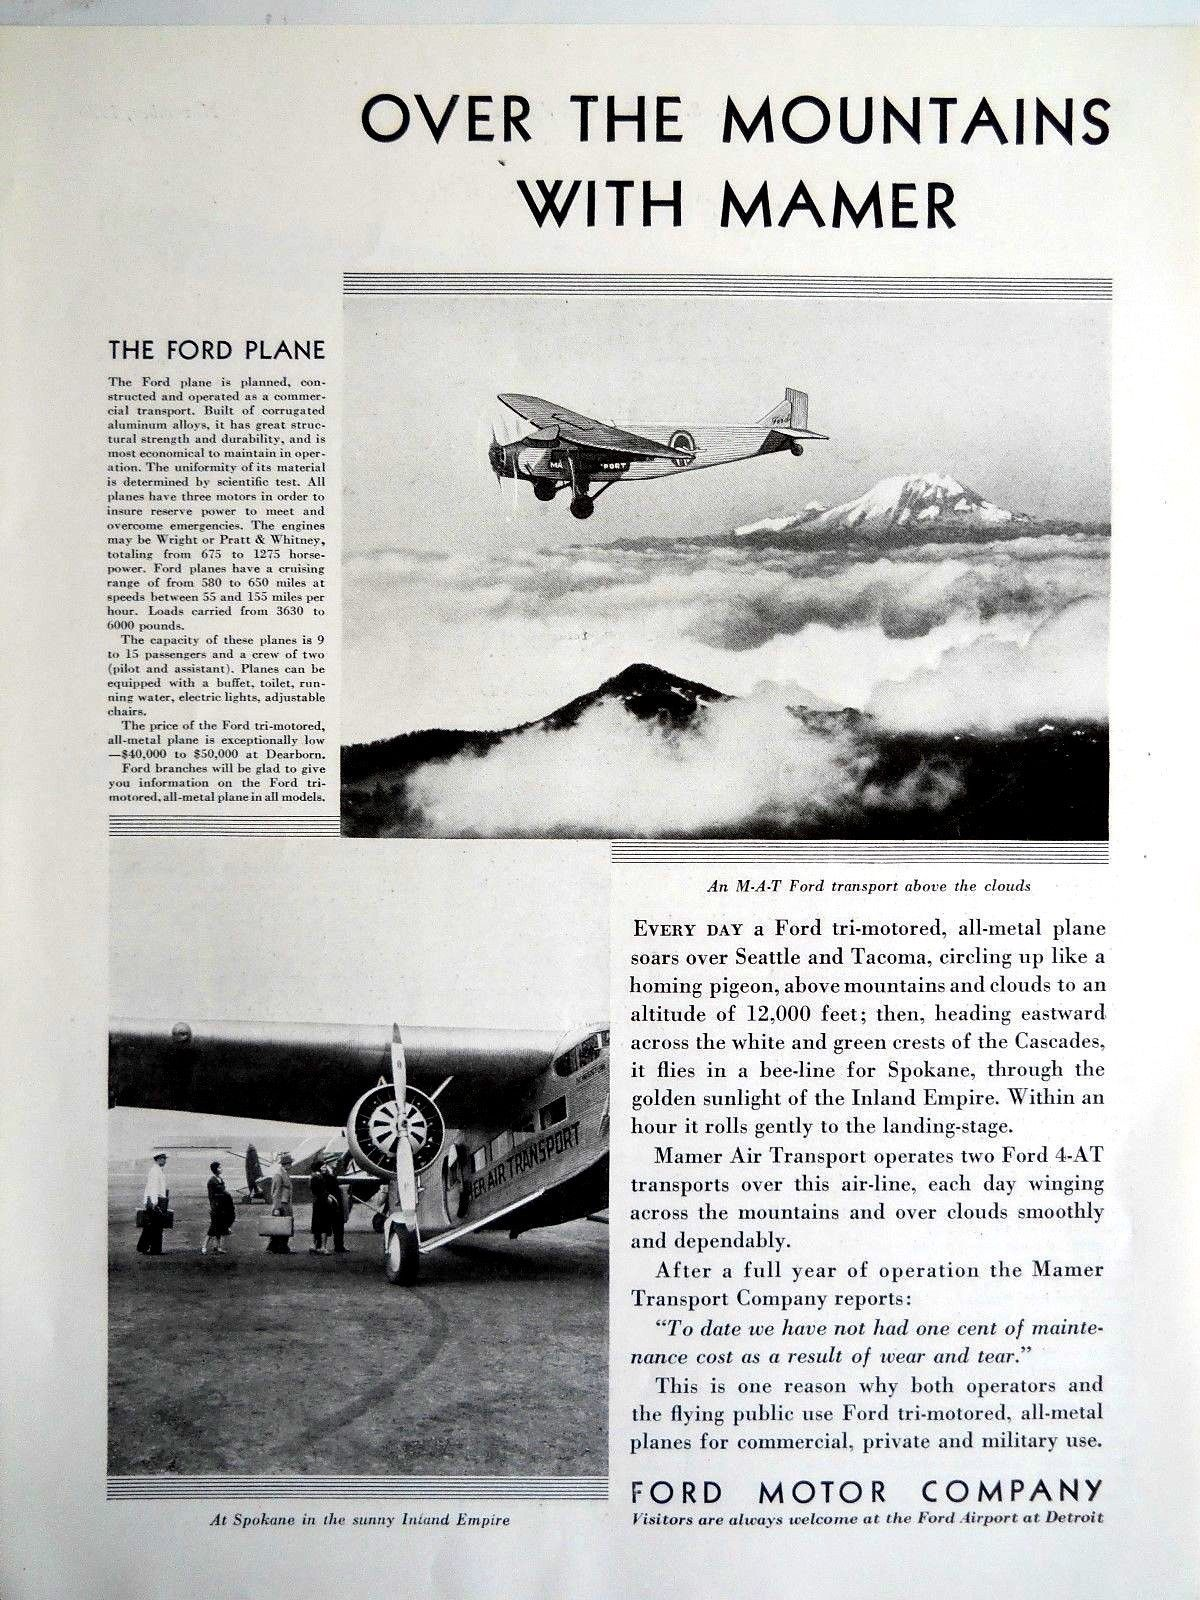 Mamer Airlines 1930 Ford Tri Motor Over The Mountains Ad 11in x 8in | eBay